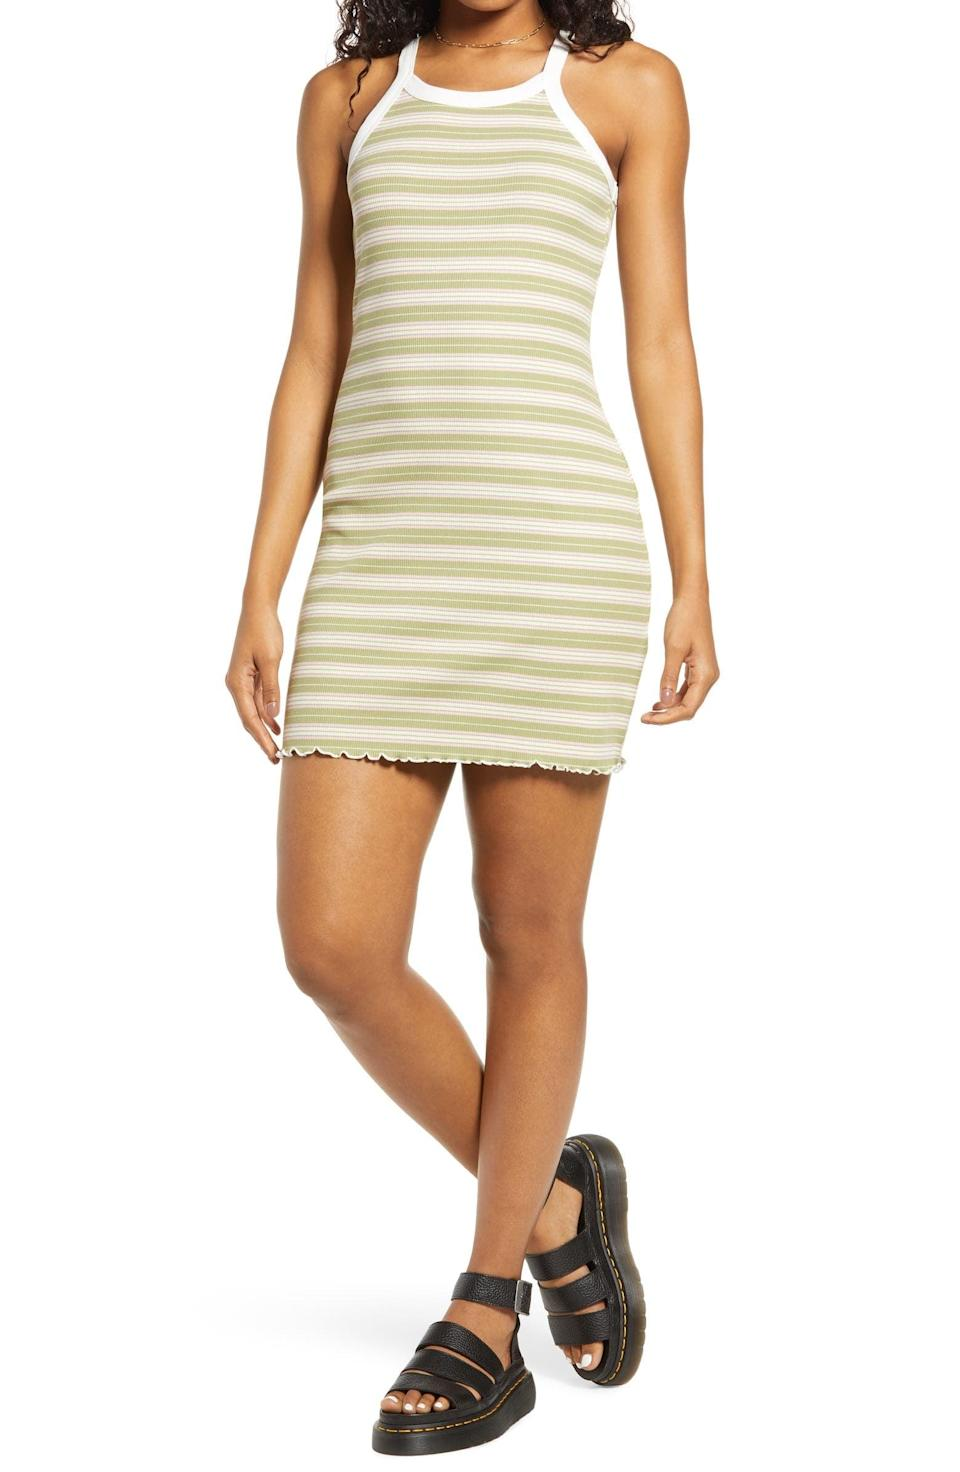 <p>Casual hangs will still be made stylish when you style this <span>BP. Ringer Rib Tank Dress</span> ($29) with some cute slide sandals or low-heeled white mules.</p>